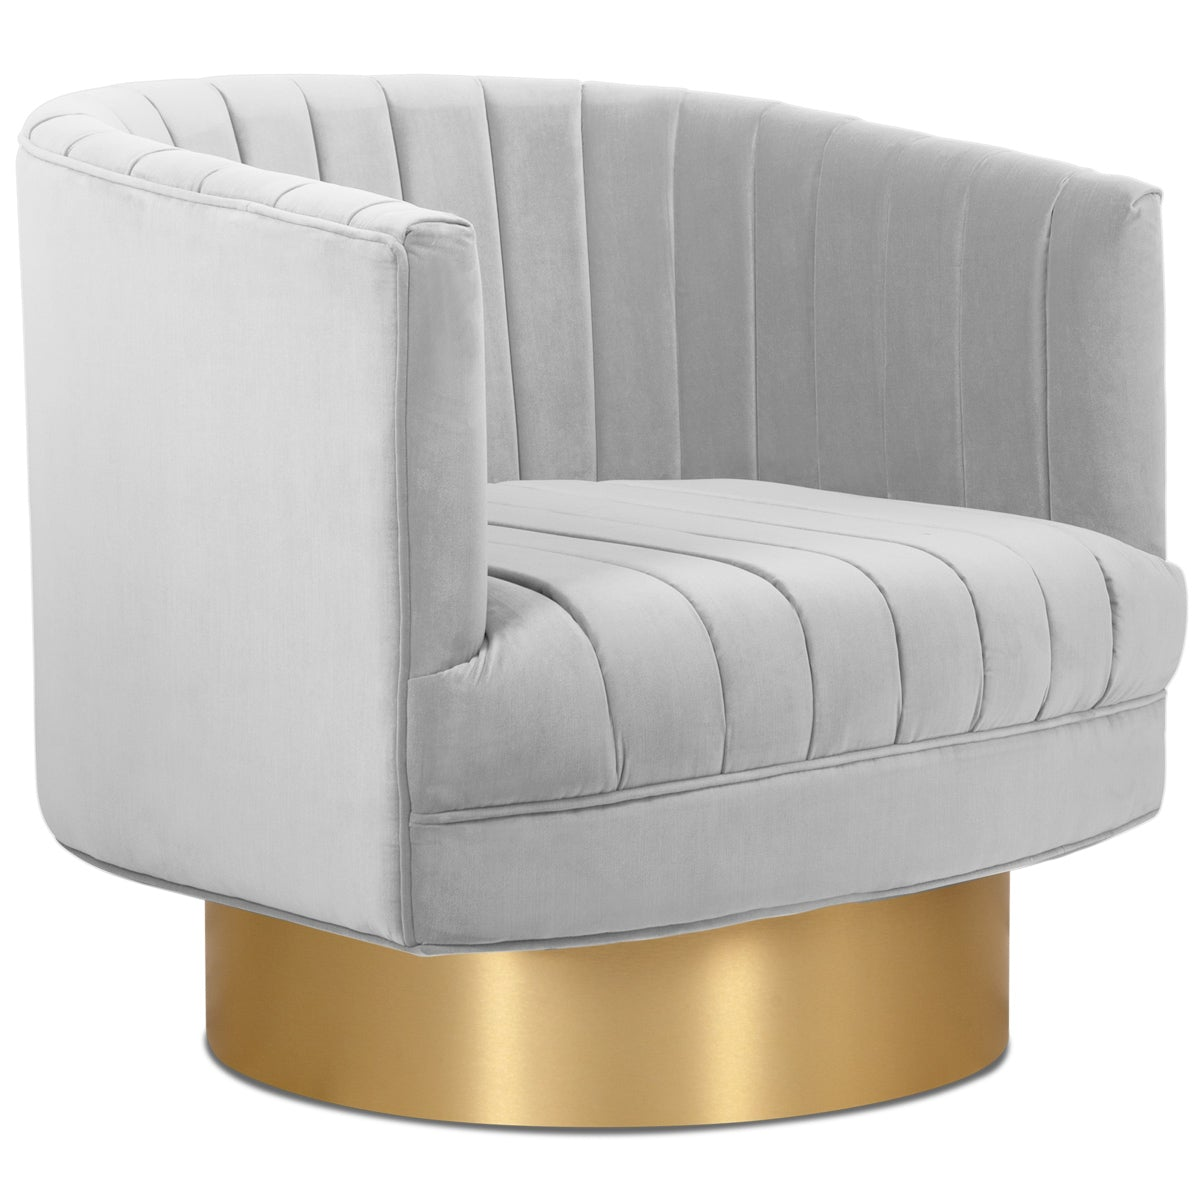 Club Chair in Channel Tufted Velvet - ModShop1.com